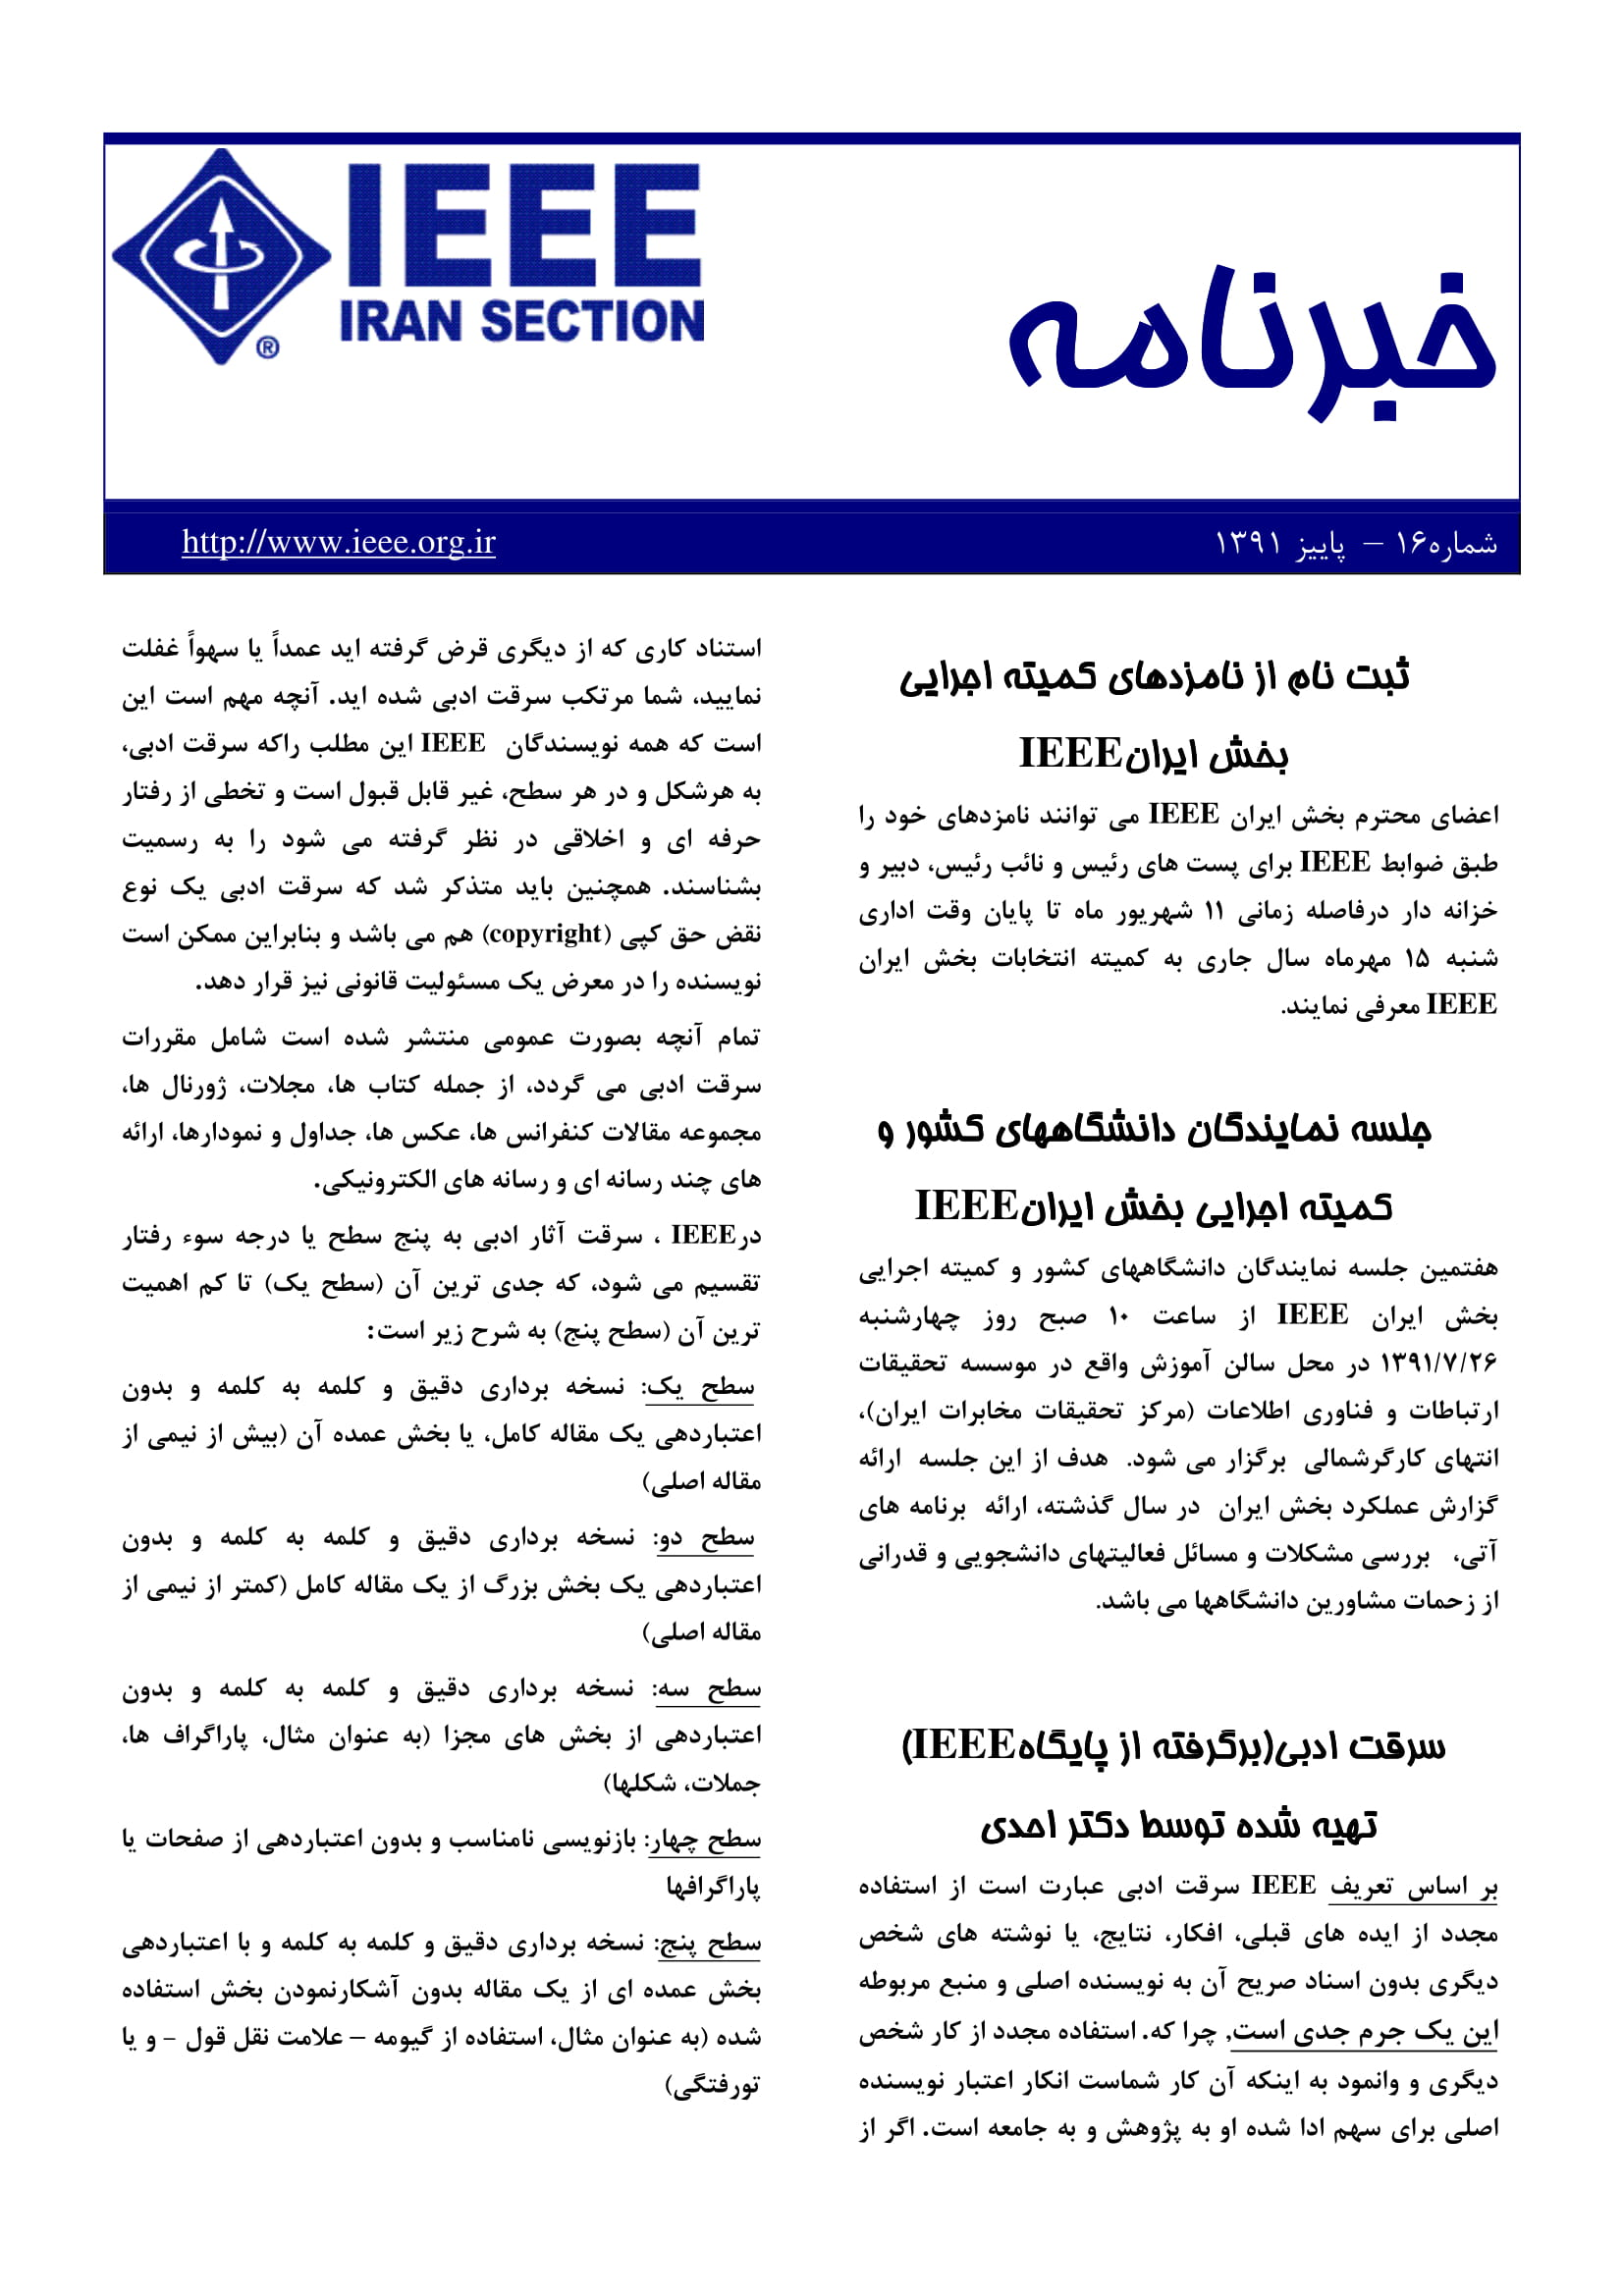 IEEE-Iran-Section_Newsletter_Fall_1391_No.16-1